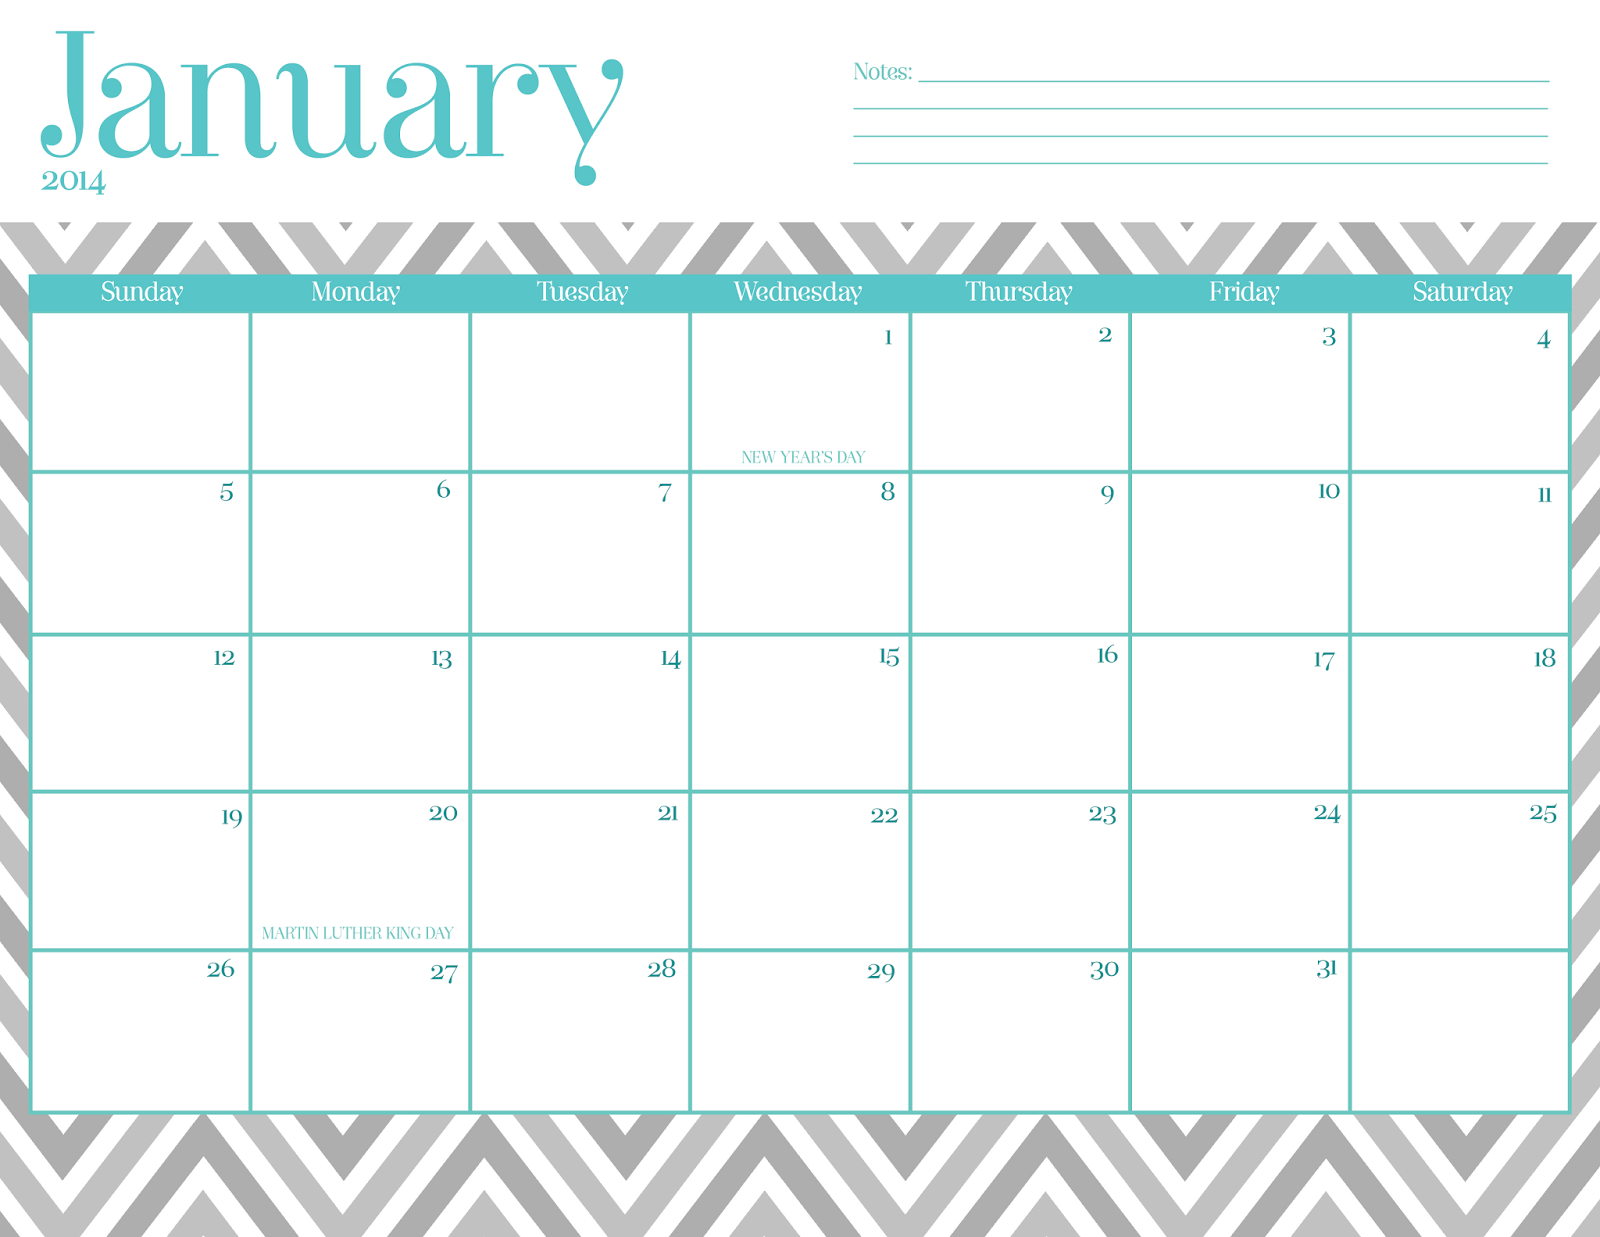 Cute January Calendar Wallpaper : Calendar cute wallpaper preschool ideas pinterest